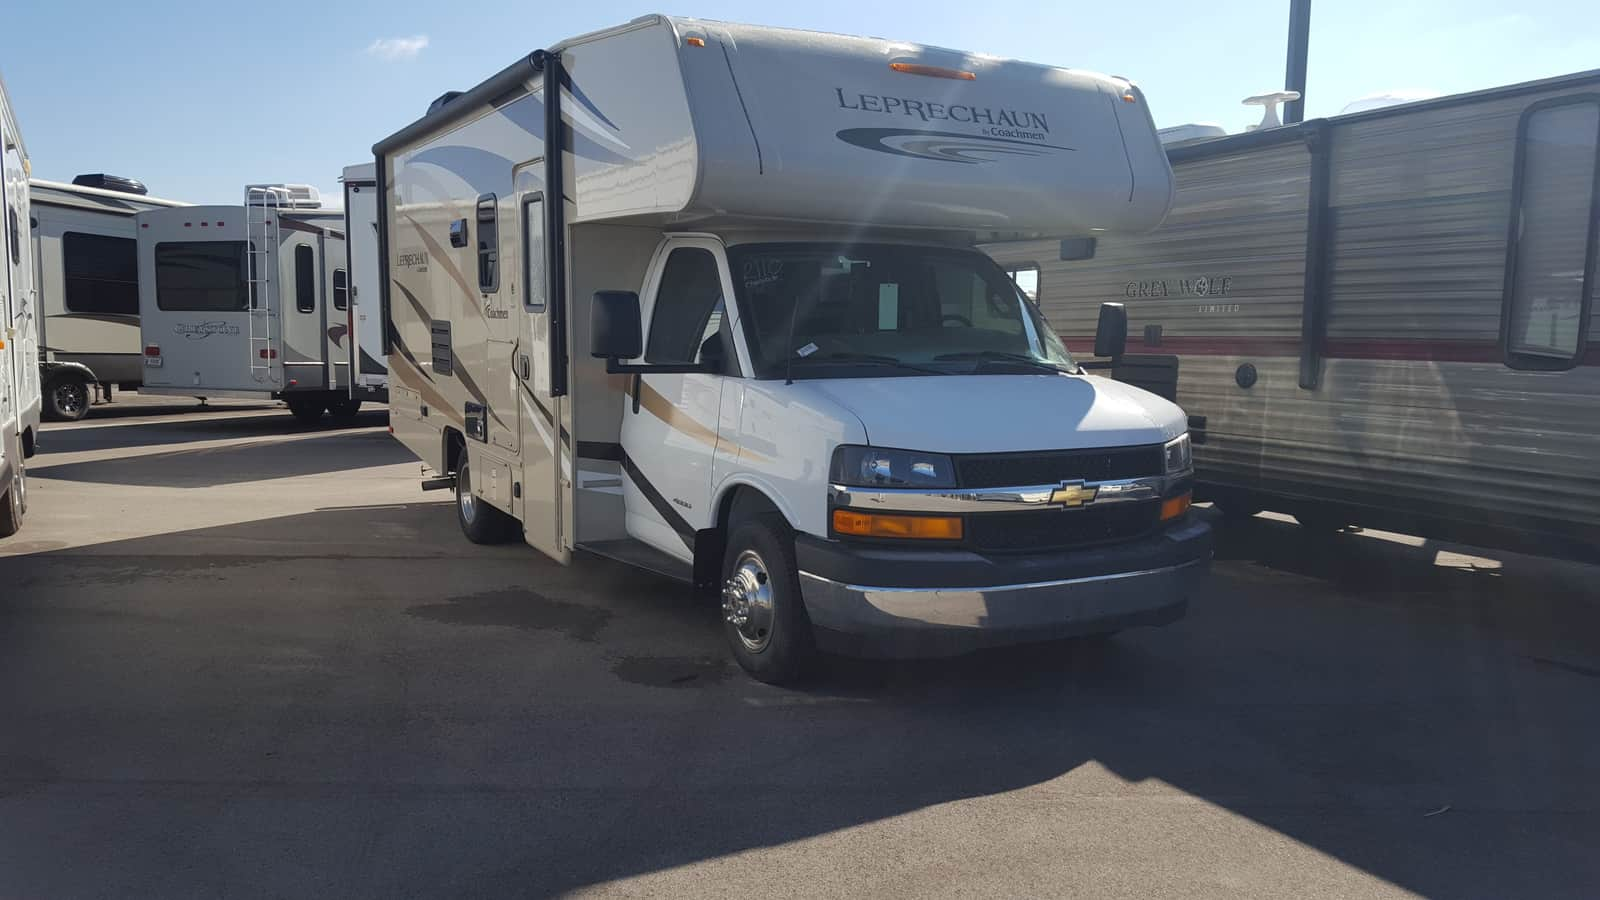 NEW 2018 Coachmen LEPRECHAUN 210RSC - American RV